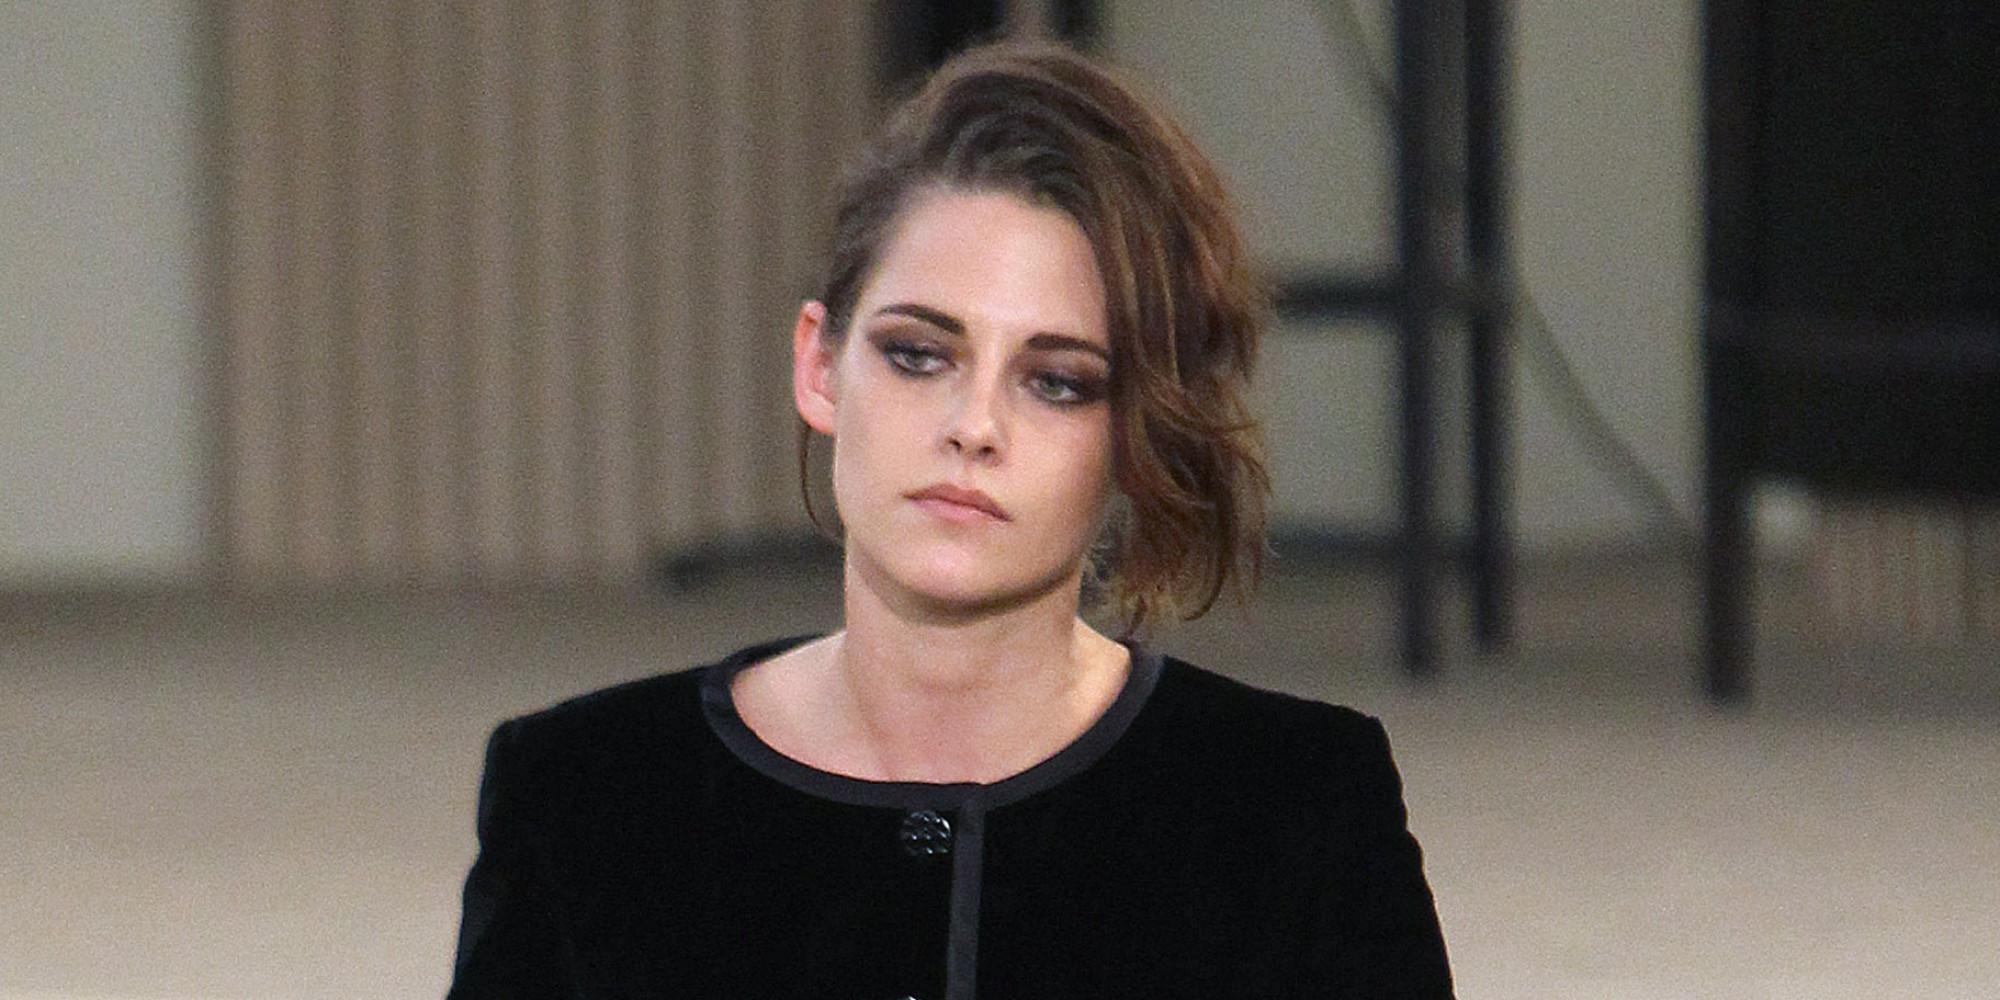 Kristen Stewart Short Hair: The Personal Reason She Cut Her Hair | The ... Kristen Stewart